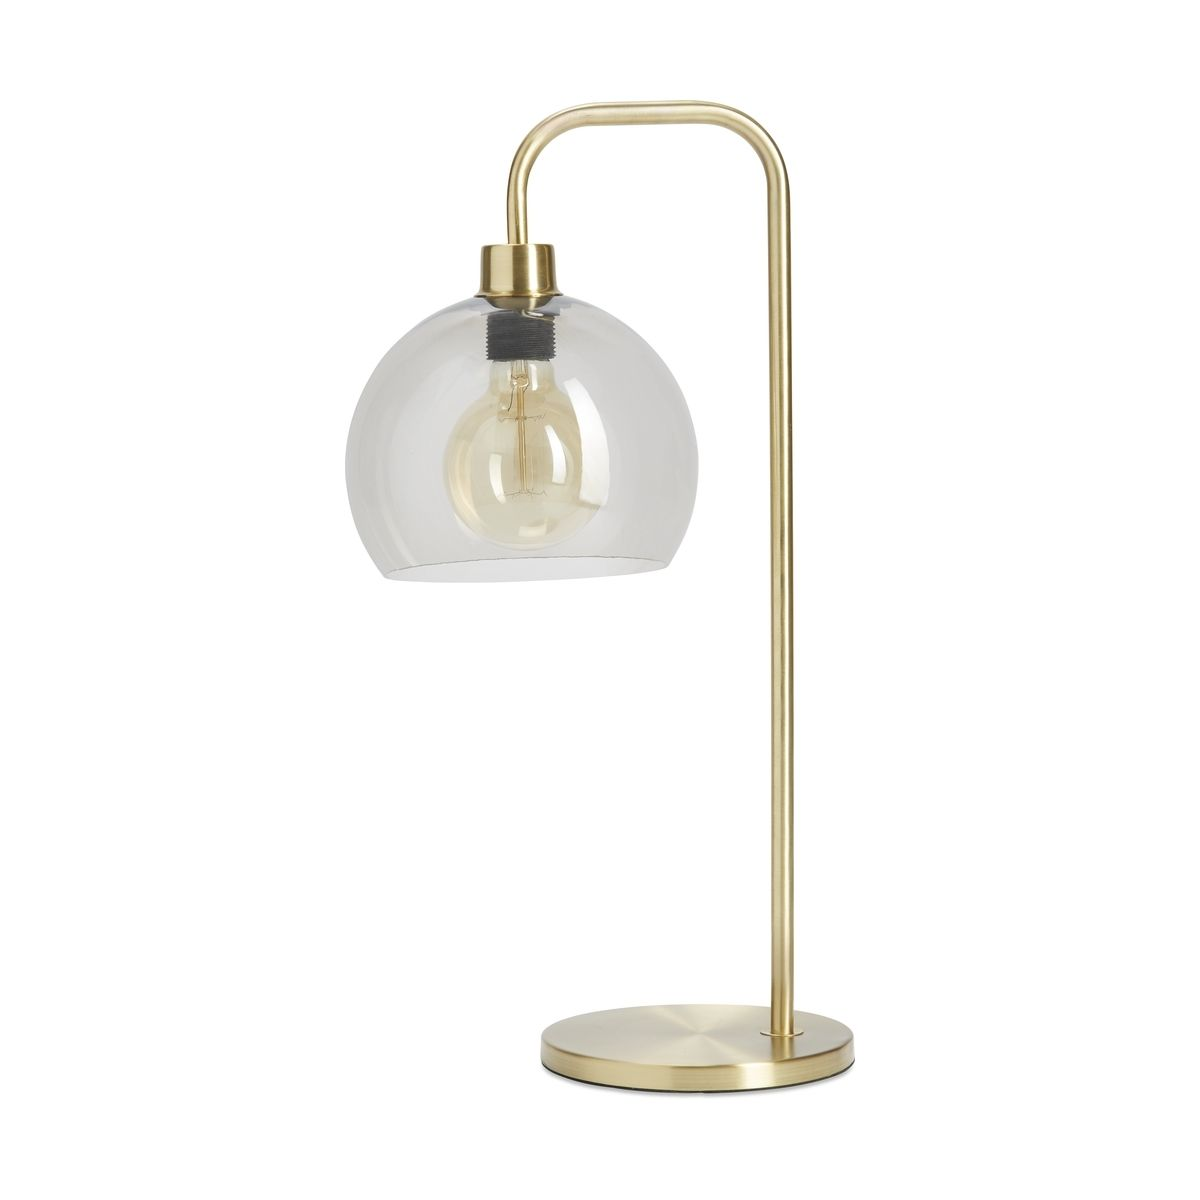 Brass Look Table Lamp Kmart Lamp Table Lamp Brass Table Lamps